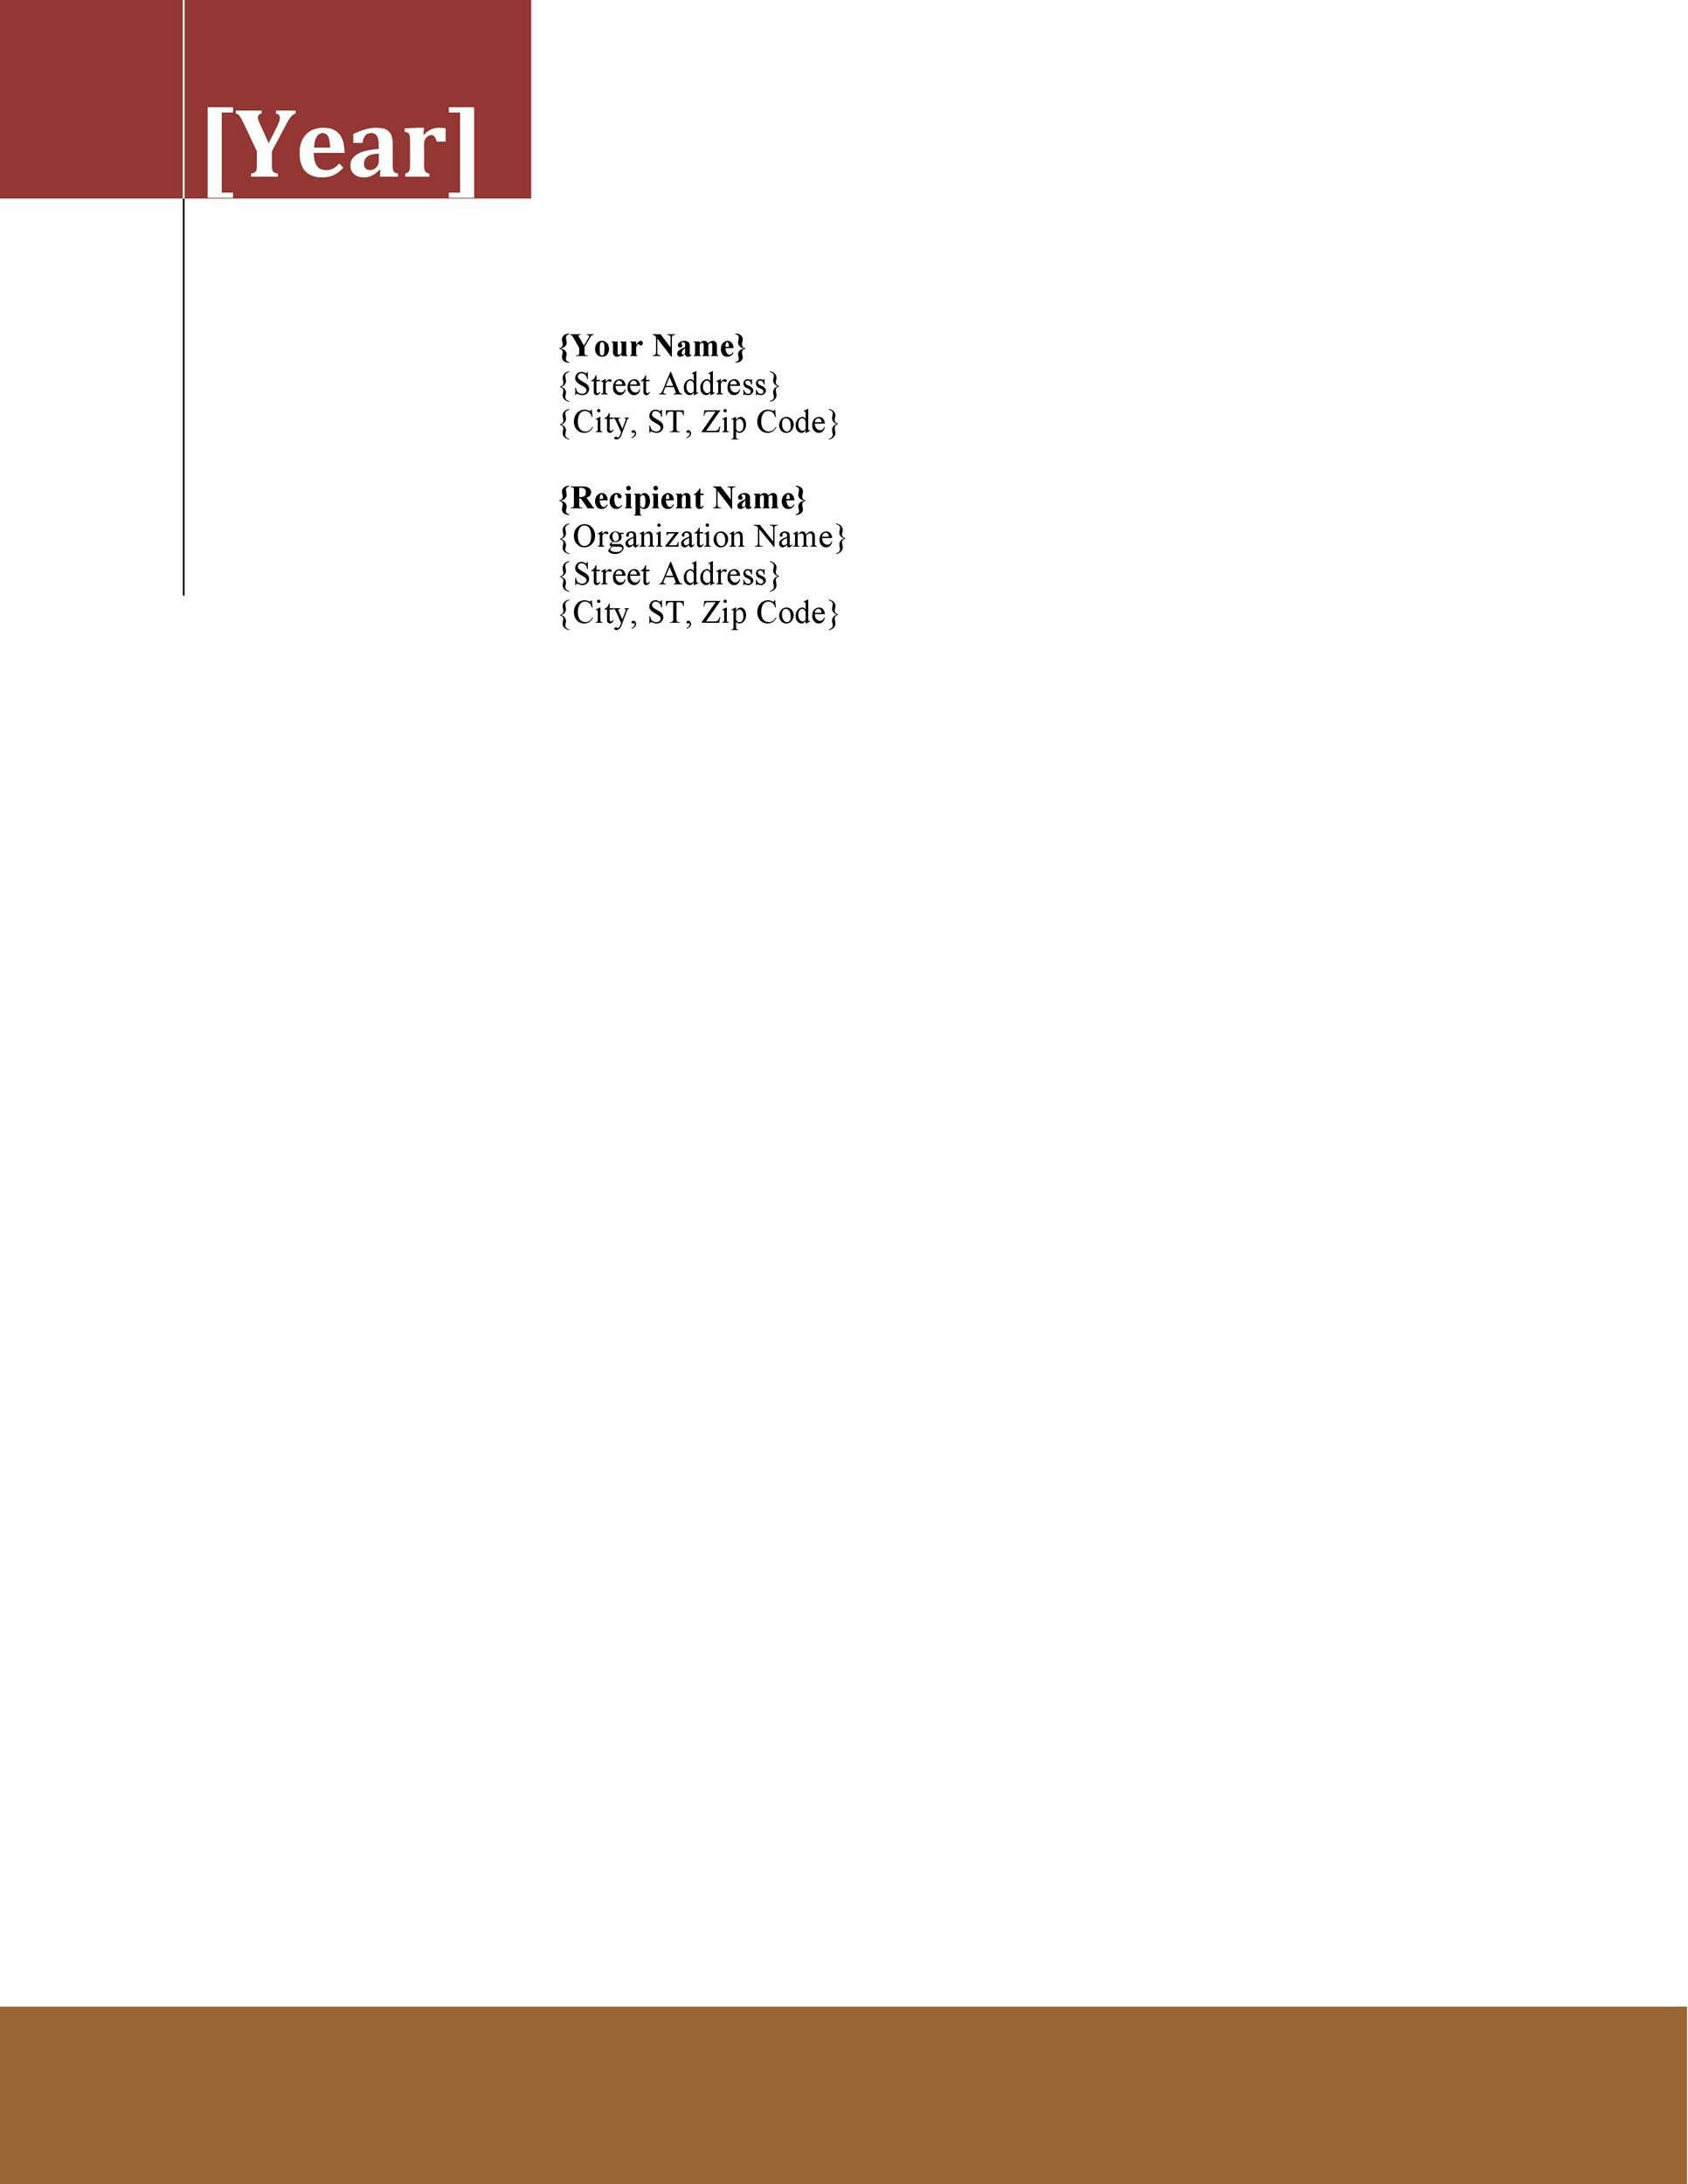 free letterhead templates for microsoft word - Onwebioinnovate